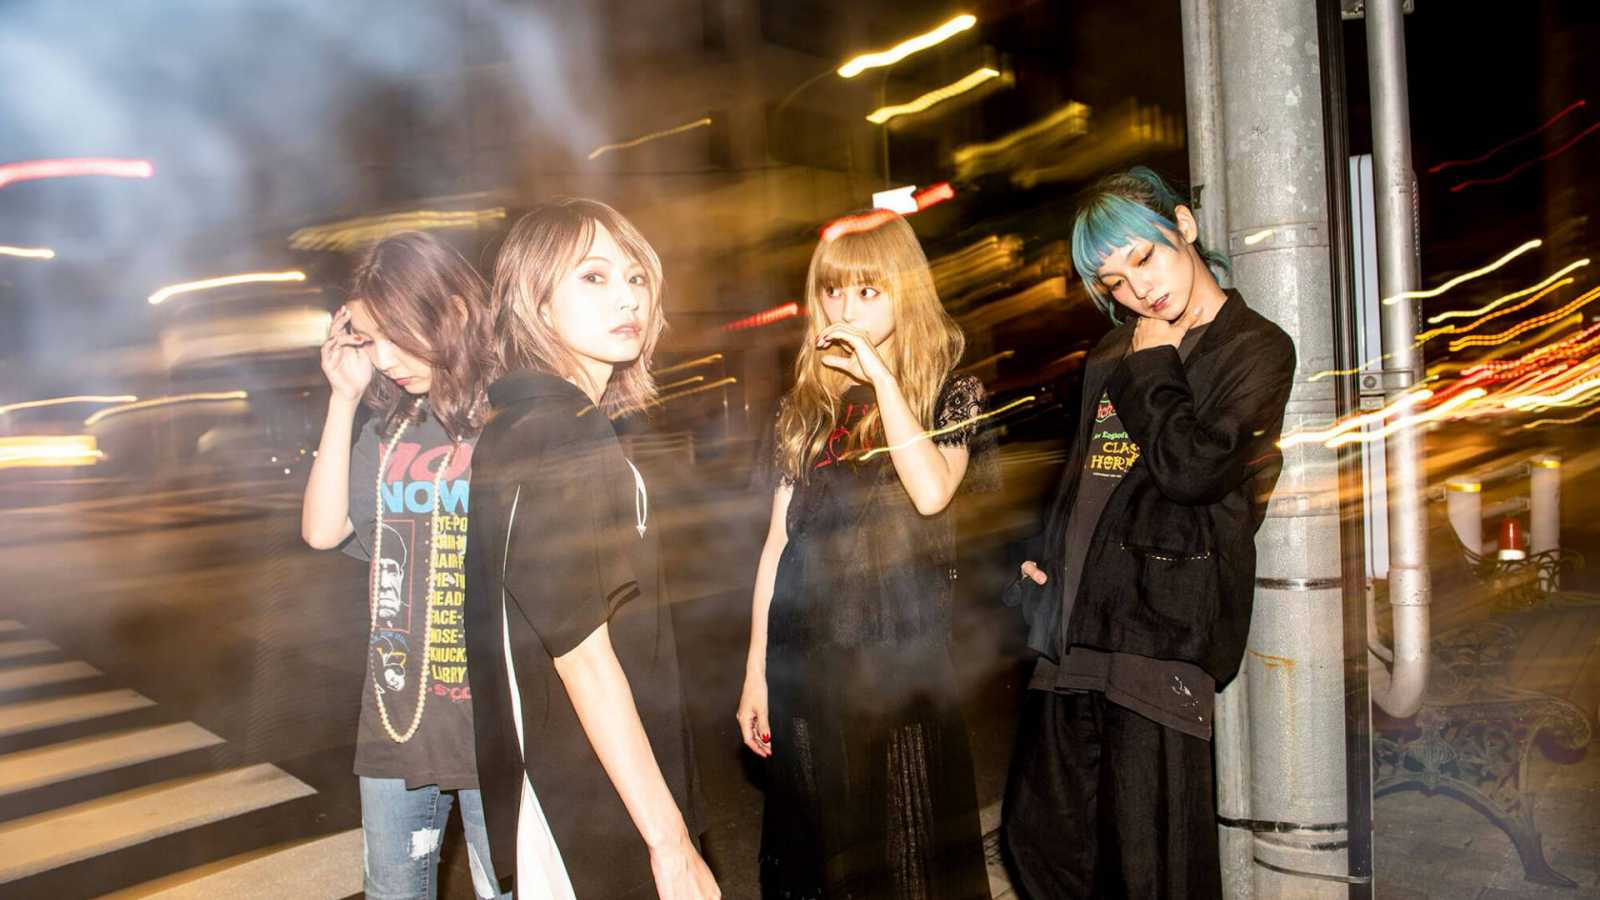 New Digital Single from SCANDAL, Band to Stream Live Performance on YouTube © her